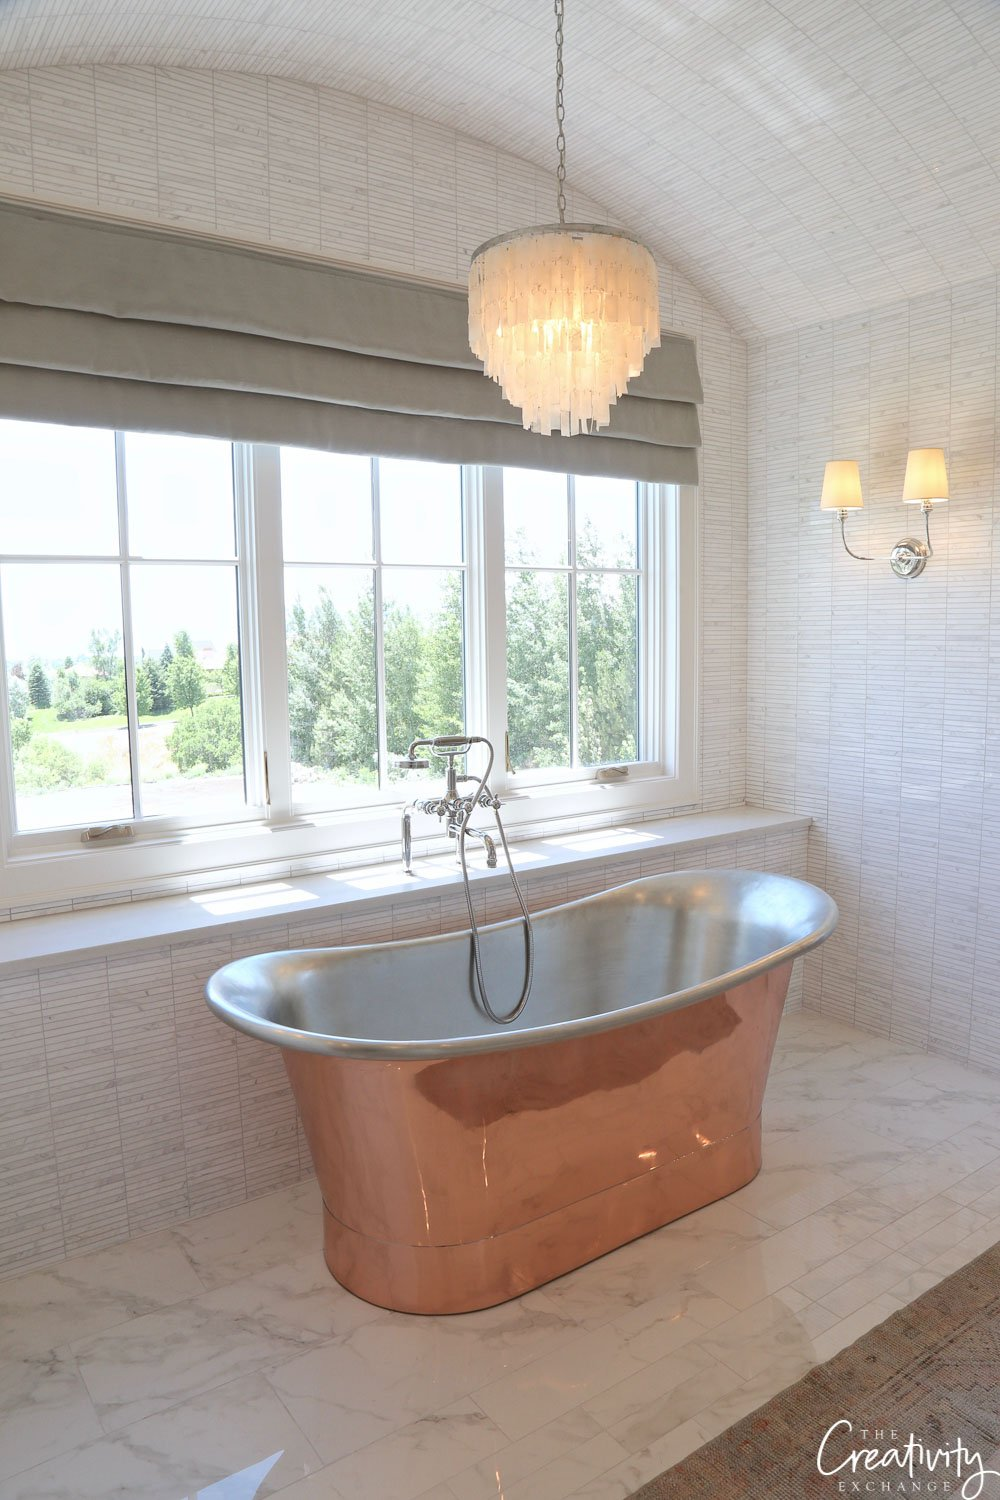 Copper free standing bathtub